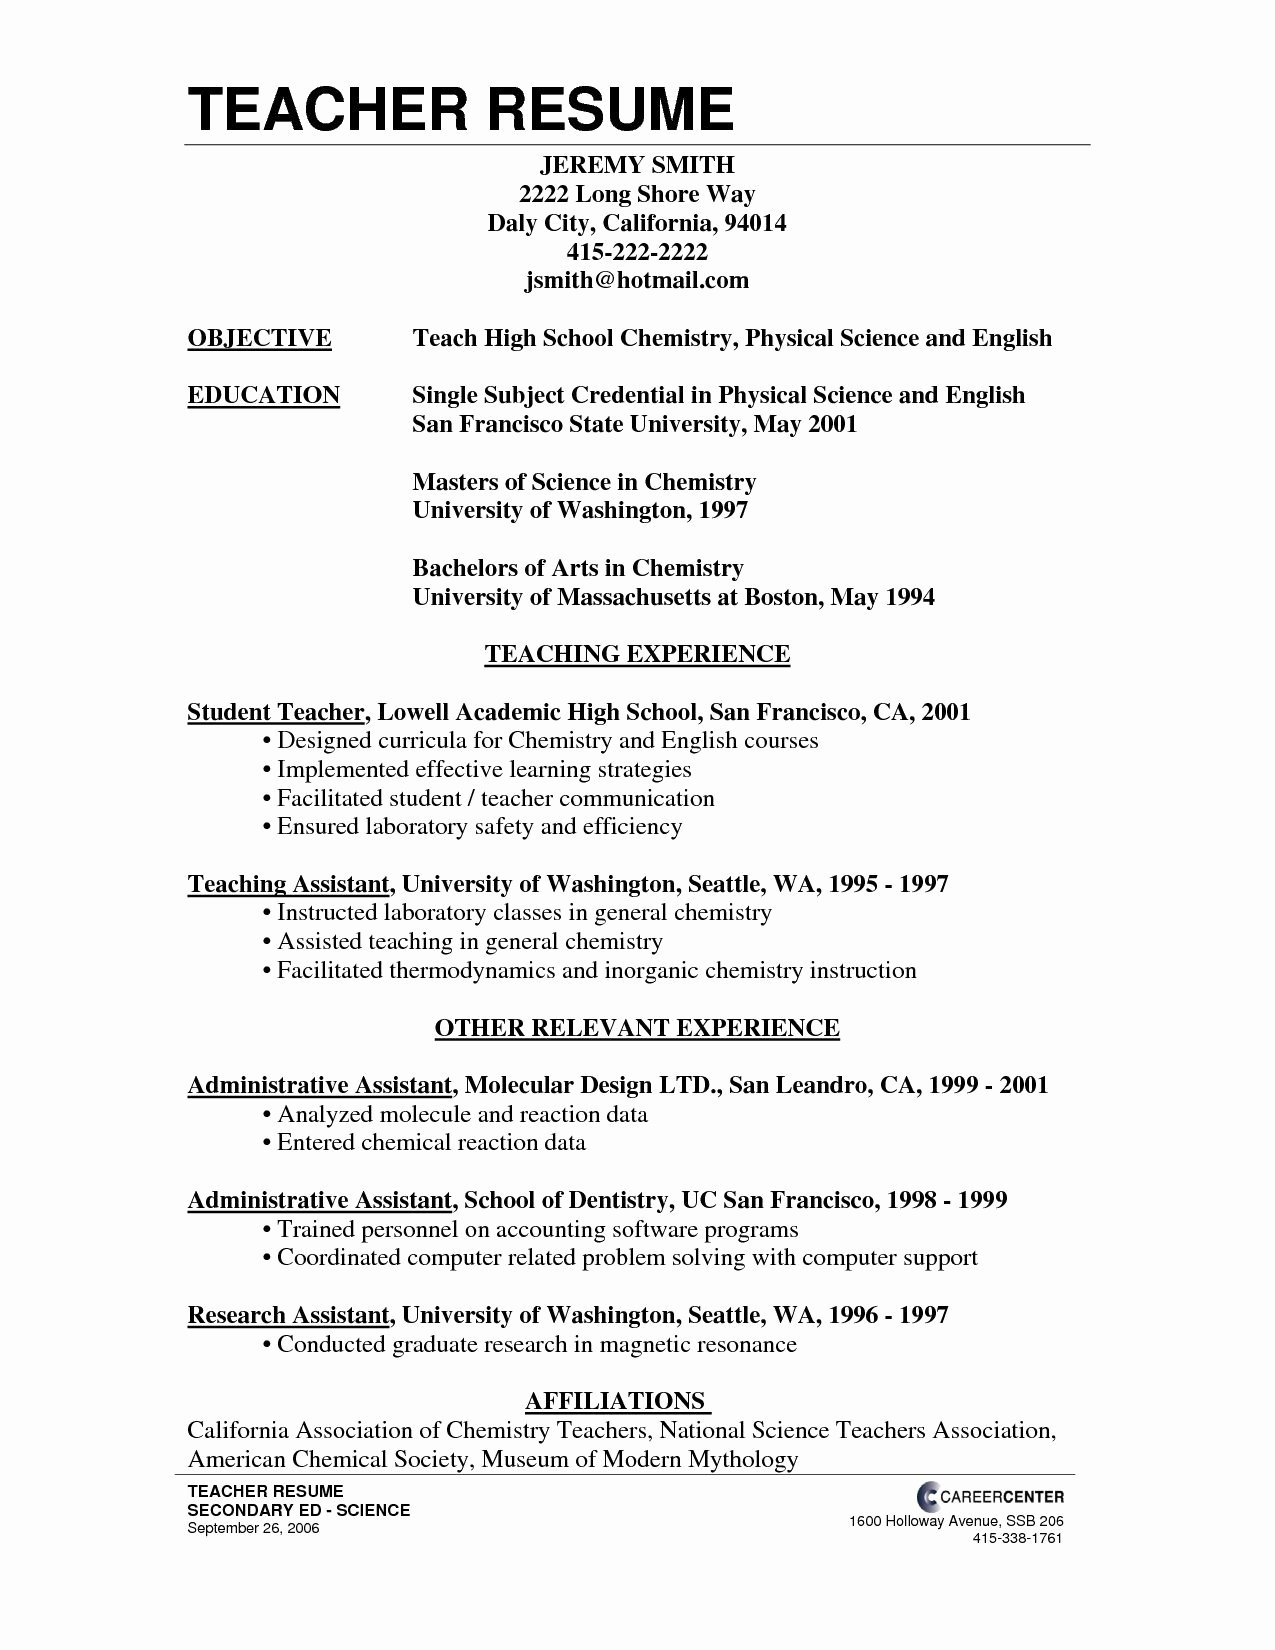 High School Teacher Resume Best Of High School Teacher Resume School Teacher Resume